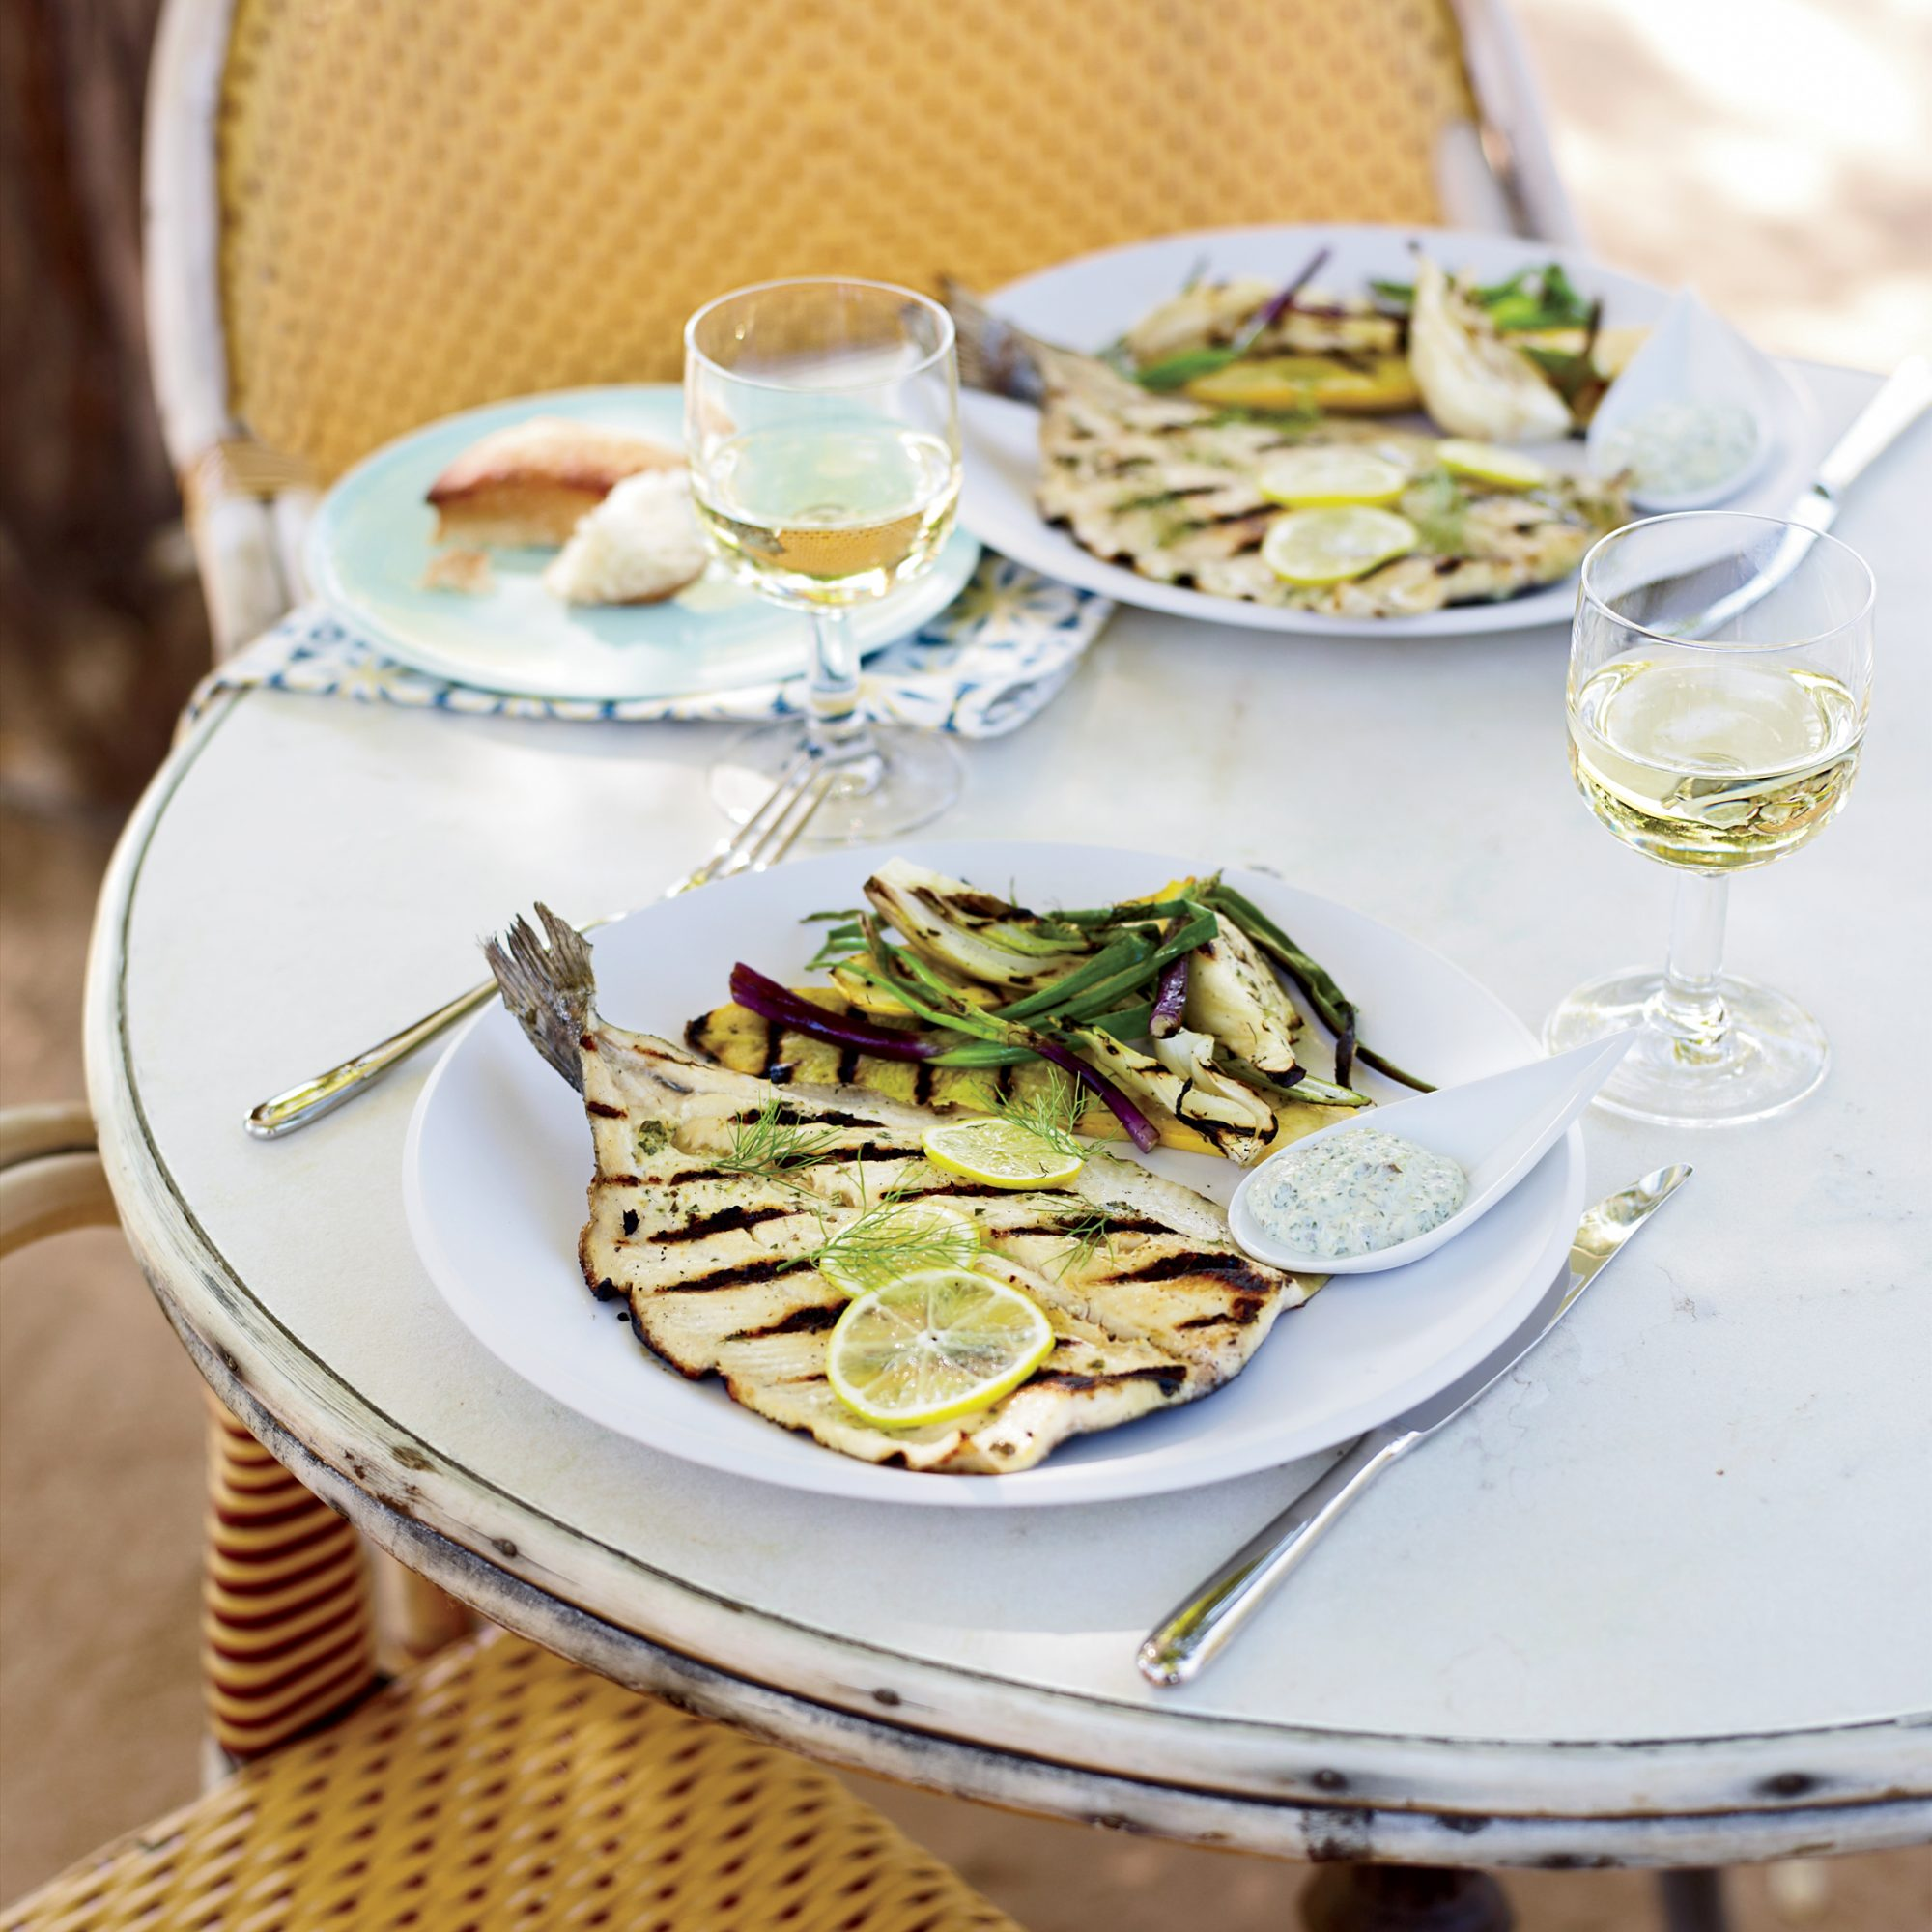 Grilled Trout with Lemon-Caper Mayonnaise